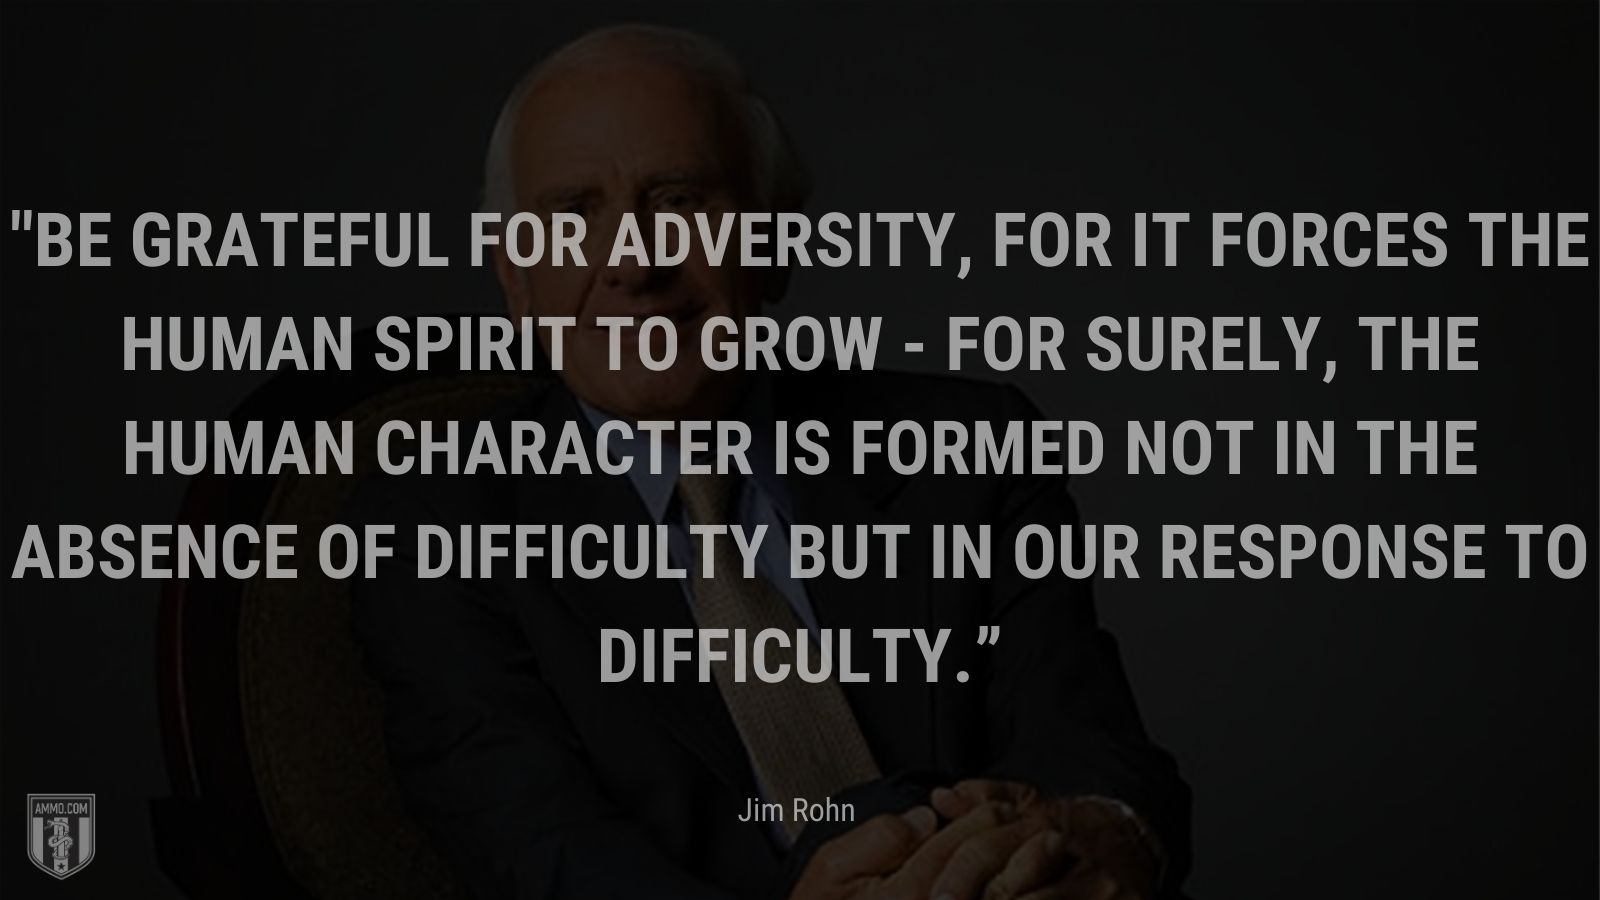 """""""Be grateful for adversity, for it forces the human spirit to grow - for surely, the human character is formed not in the absence of difficulty but in our response to difficulty."""" - Jim Rohn"""